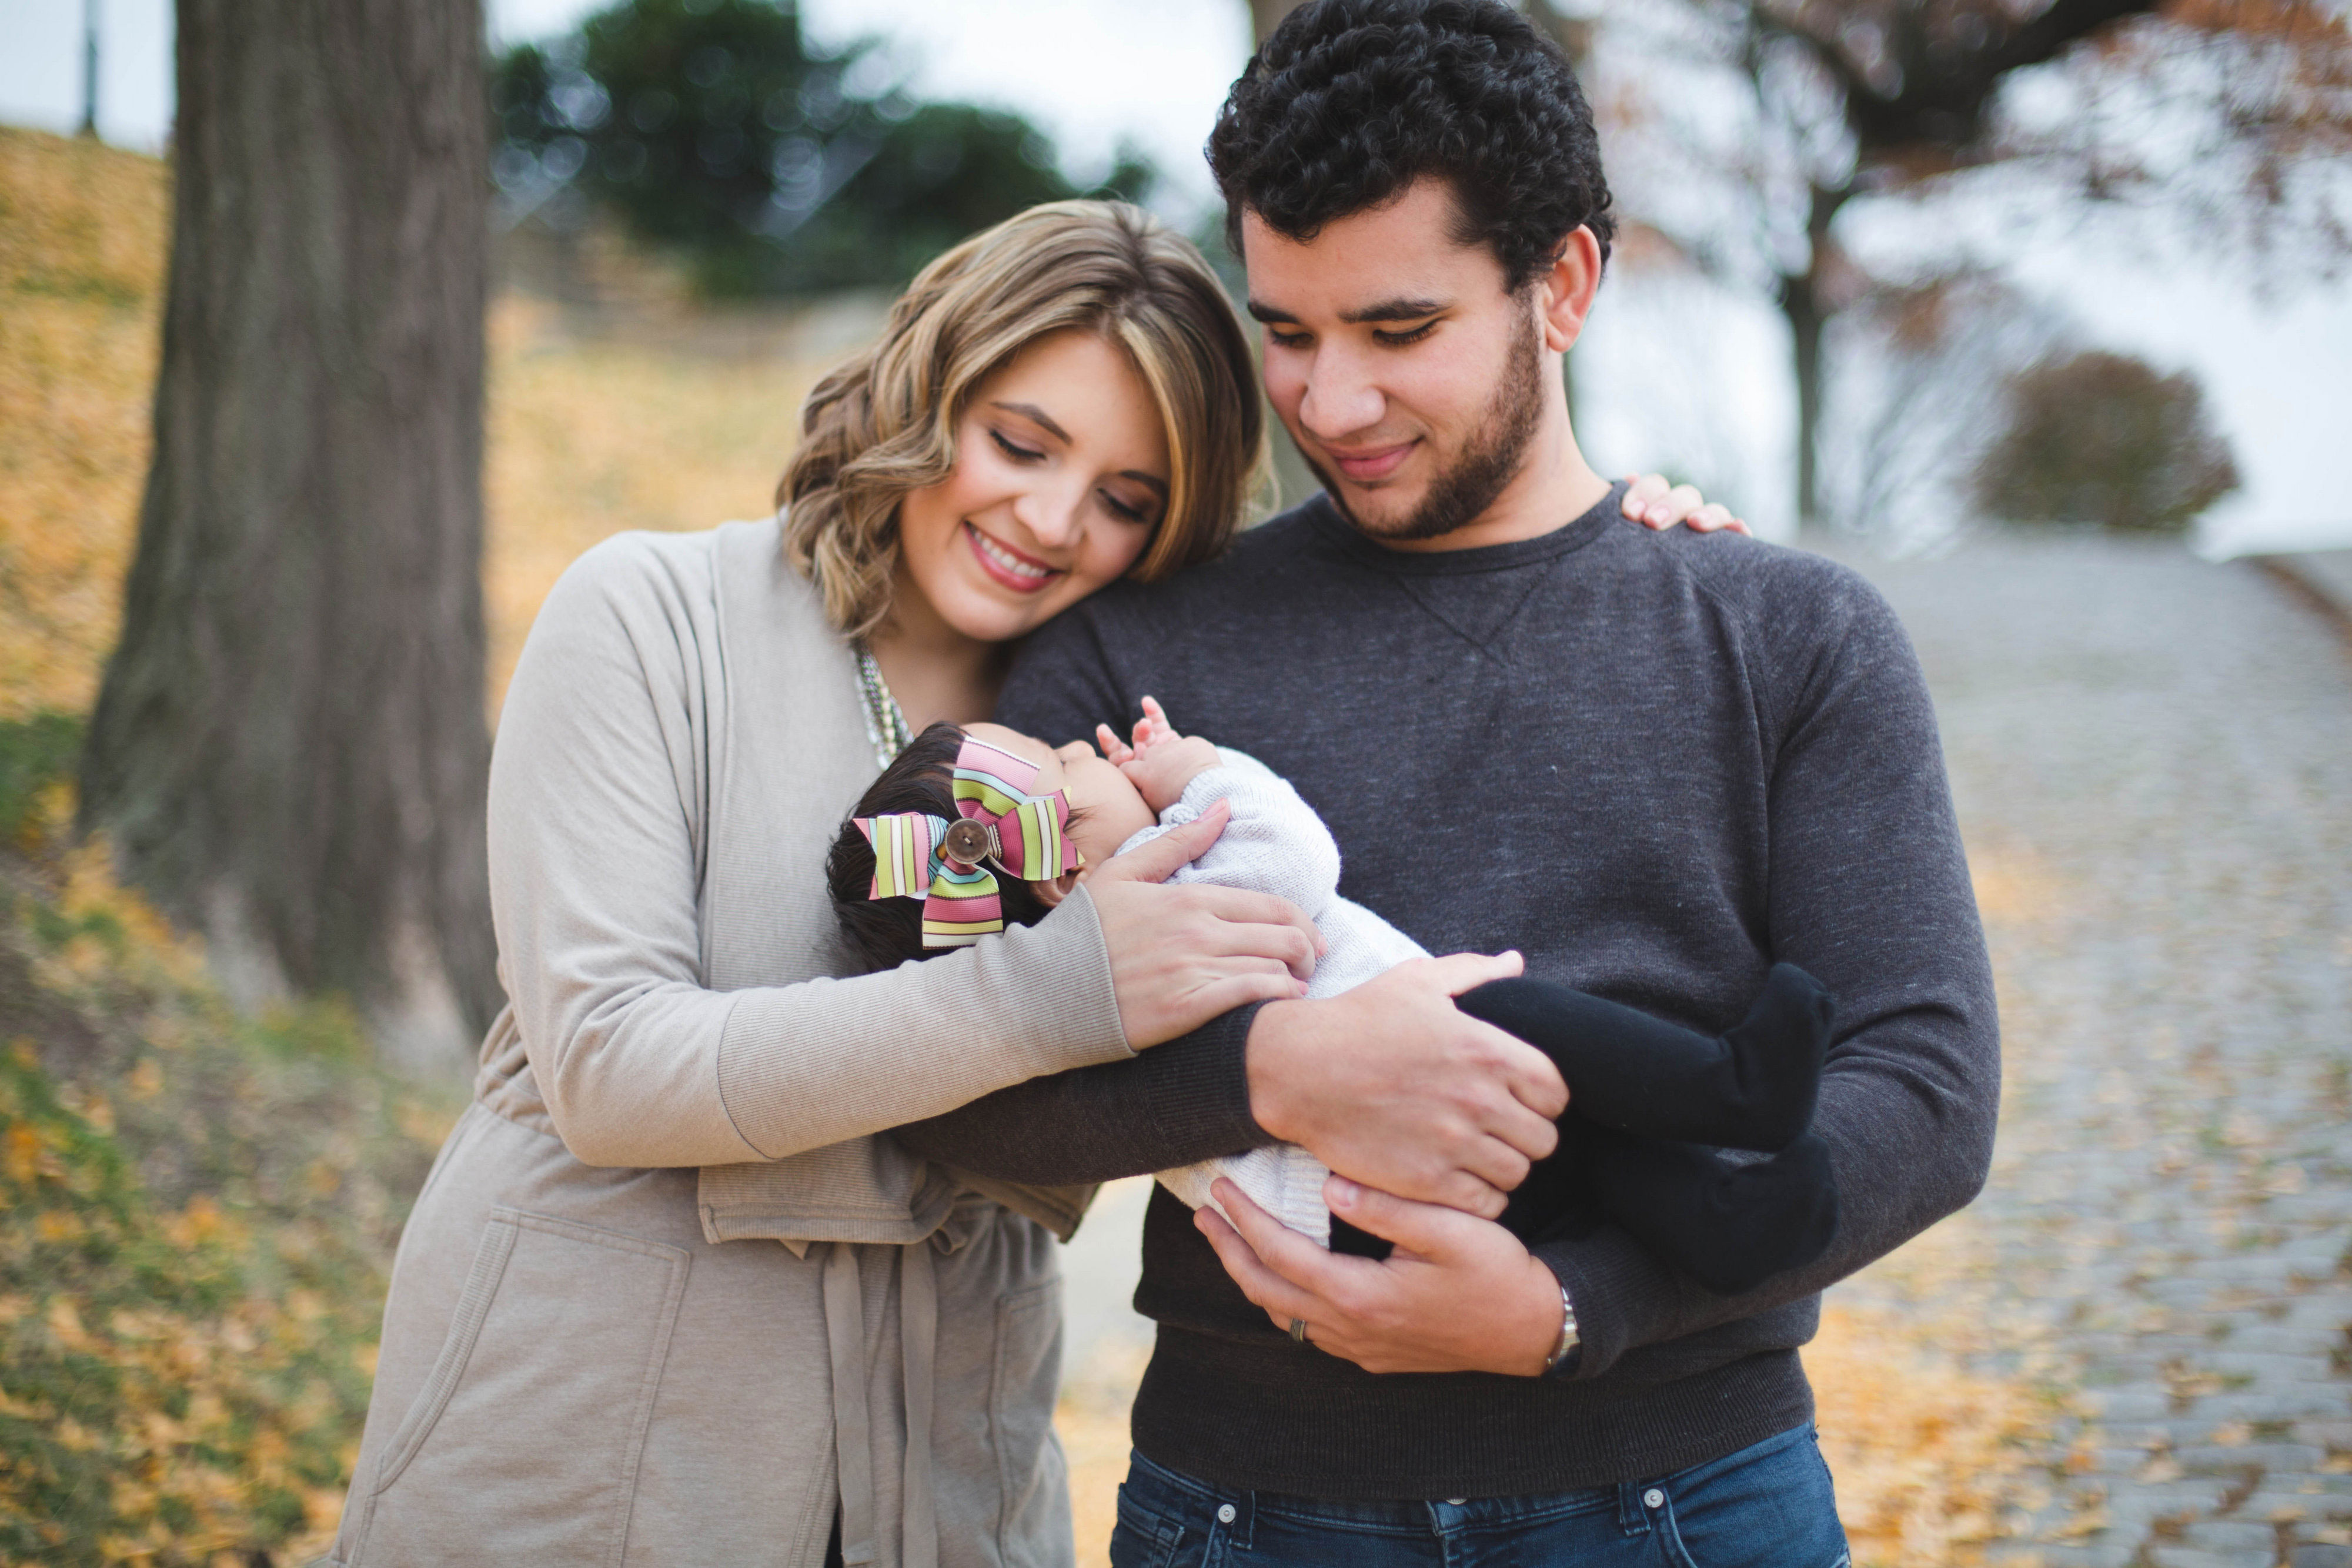 family photo outfits with infant - tips for family photo outfits | www.bylaurenm.com